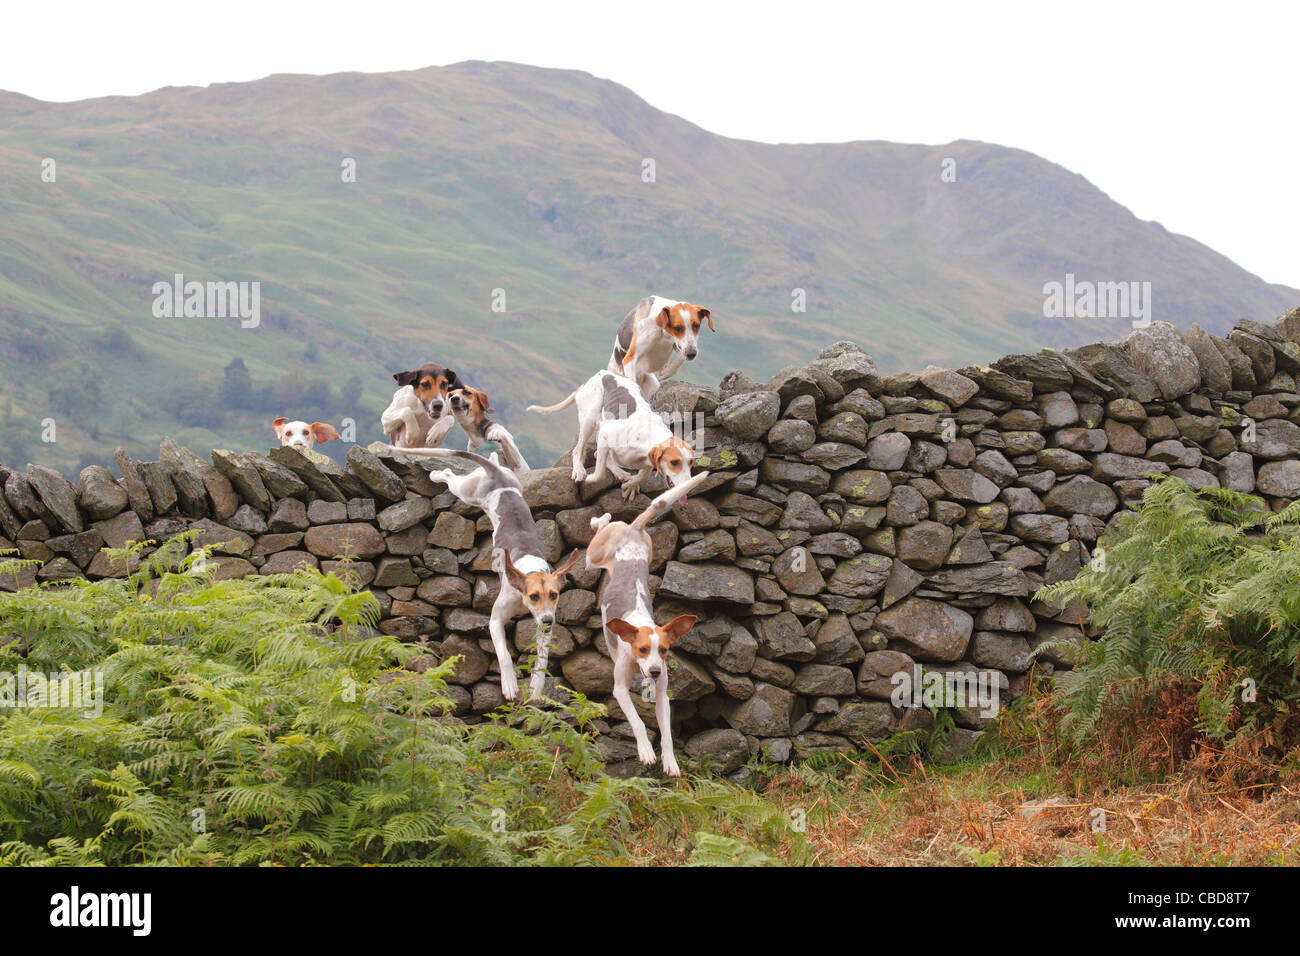 Trail Hounds jumping over a dry stone wall Ambleside Sports, The Lake District, Cumbria, England, UK - Stock Image